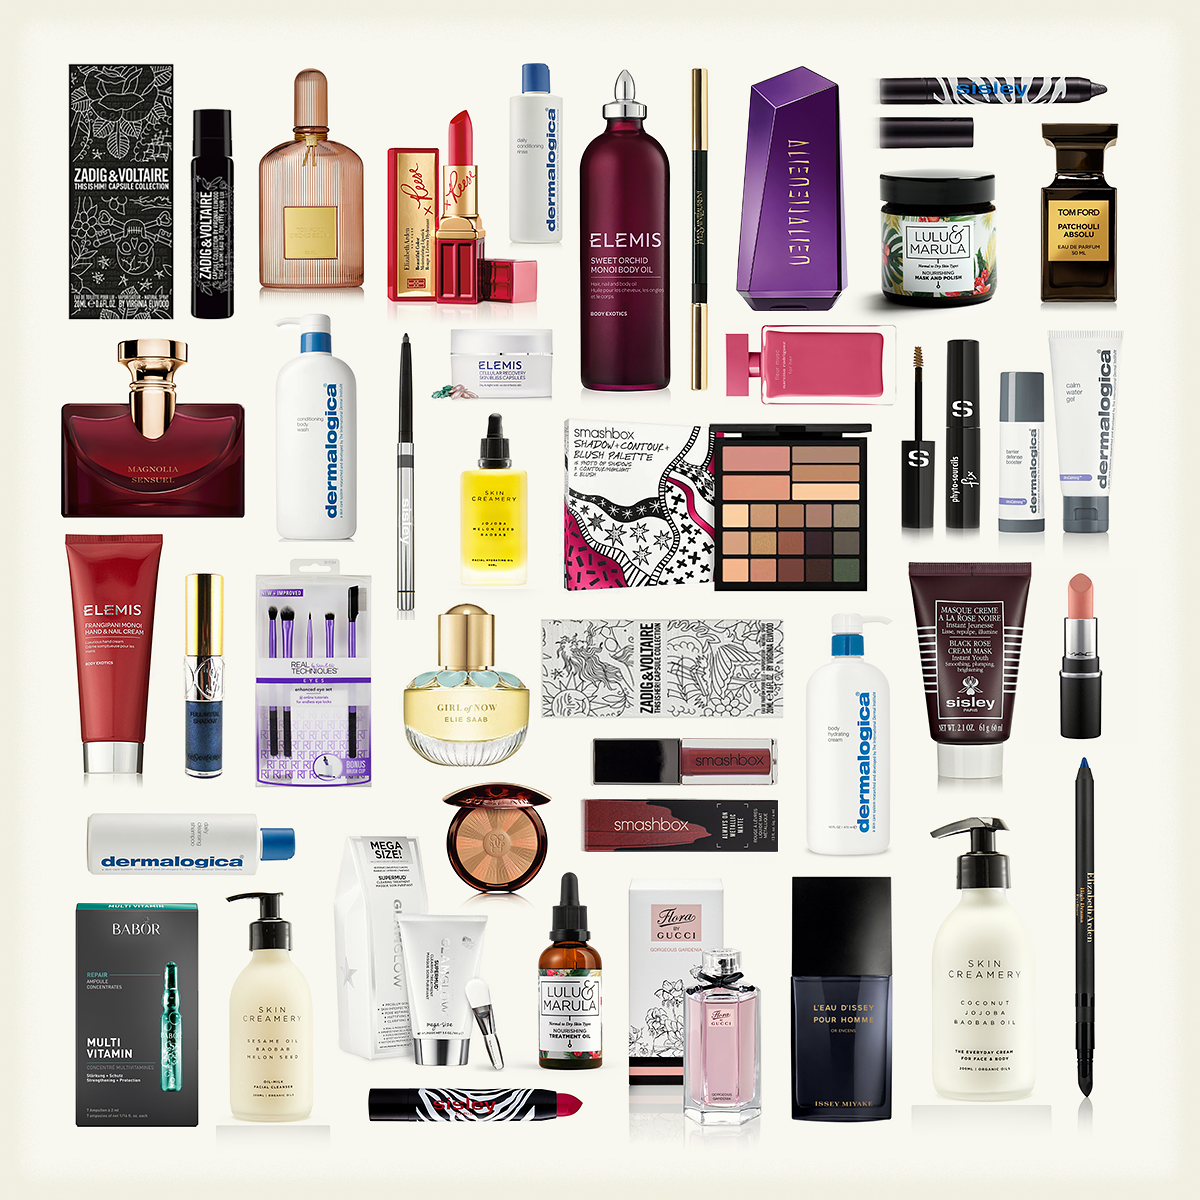 Who wants to win a beauty hamper valued at R40 000? OF COURSE YOU DO! {GIVEAWAY}